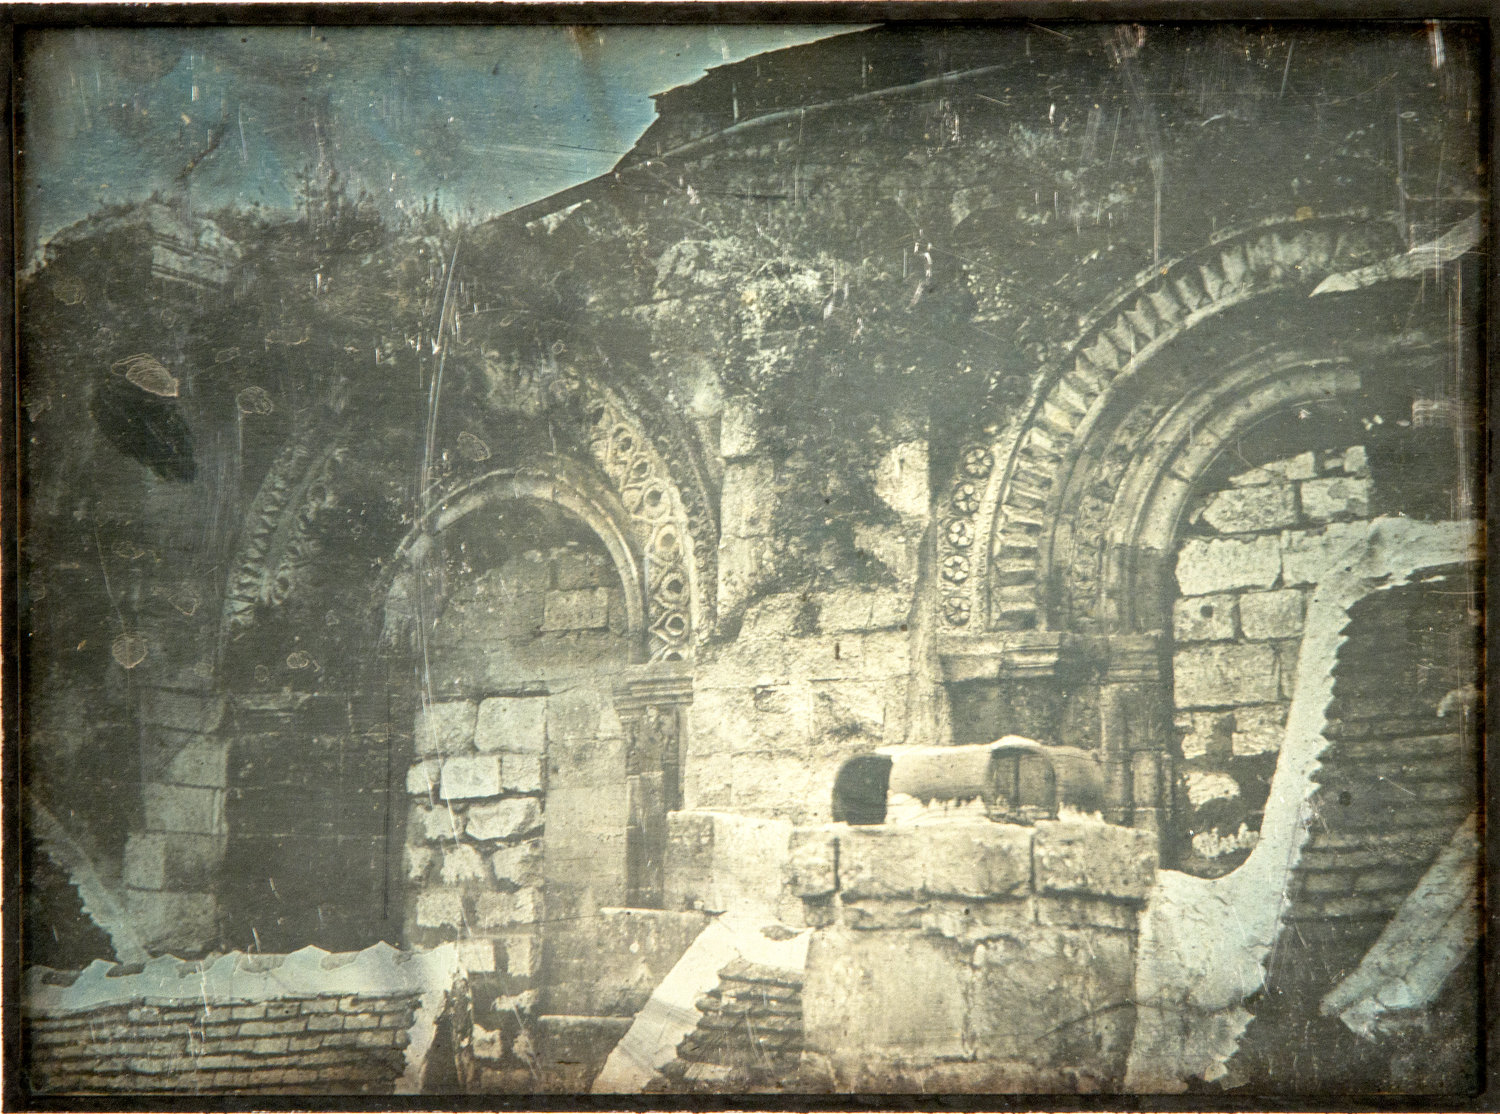 """Untitled (Archaeological scene, Jerusalem),"" a daguerreotype from 1844 by Joseph-Philibert."